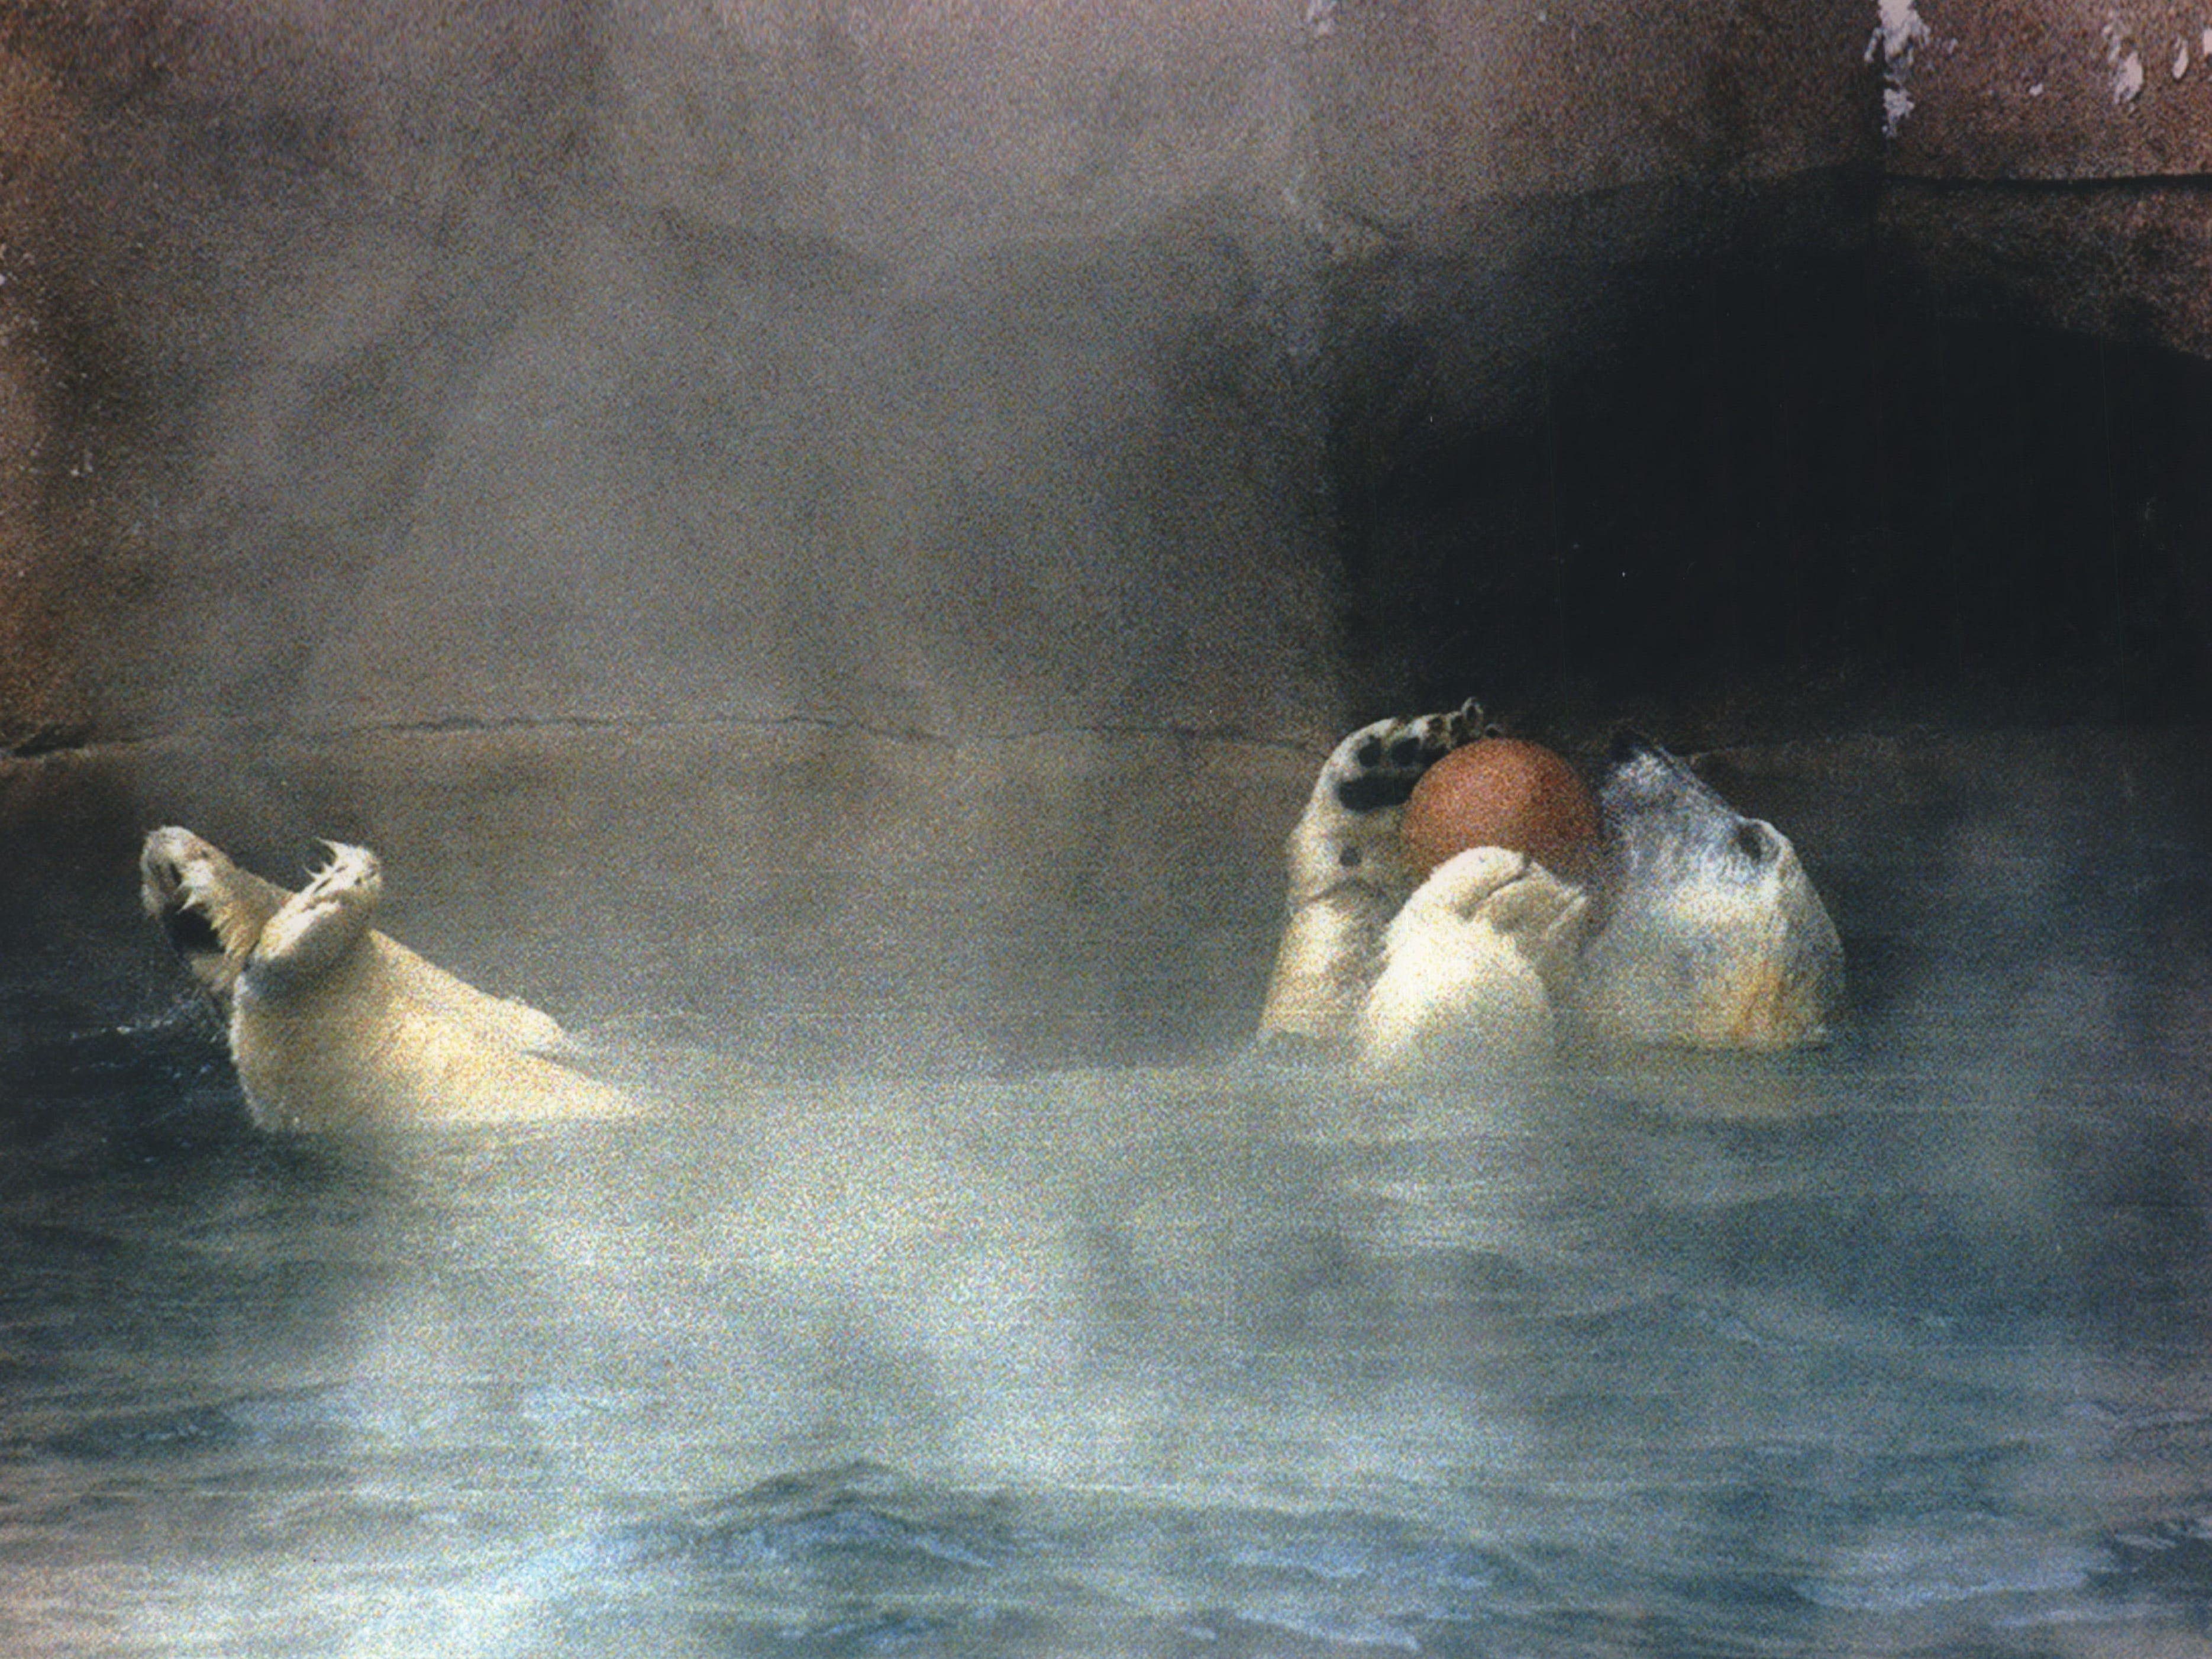 Zero, a 4-year-old male polar bear, enjoys a swim in 40-degree water outside his enclosure at the Milwaukee County Zoo on Jan. 19, 1994. The air around him was about 10 degrees below zero, but earlier that day, the mercury hit 21 below zero. This photo was published on the front page of the Jan. 20, 1994, Milwaukee Sentinel.